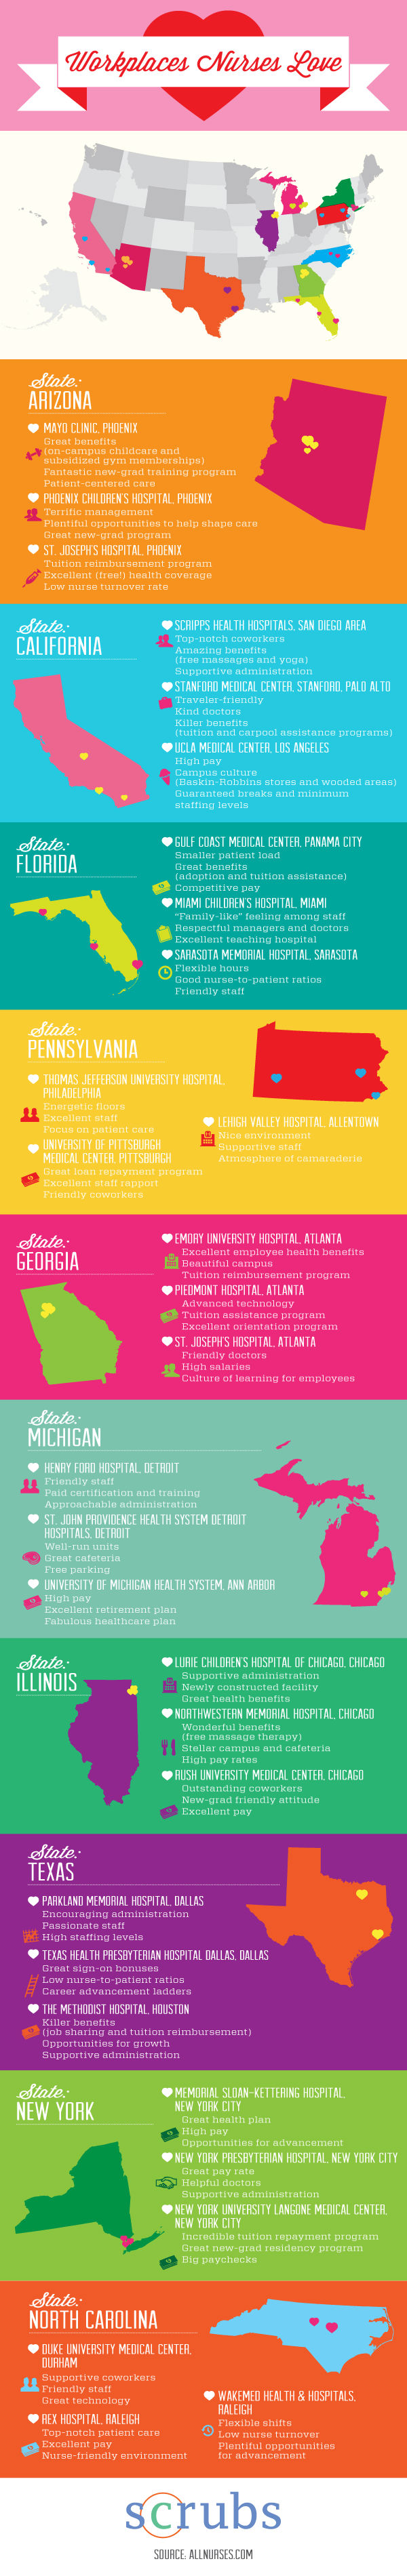 Workplaces Nurses Love [Infographic]